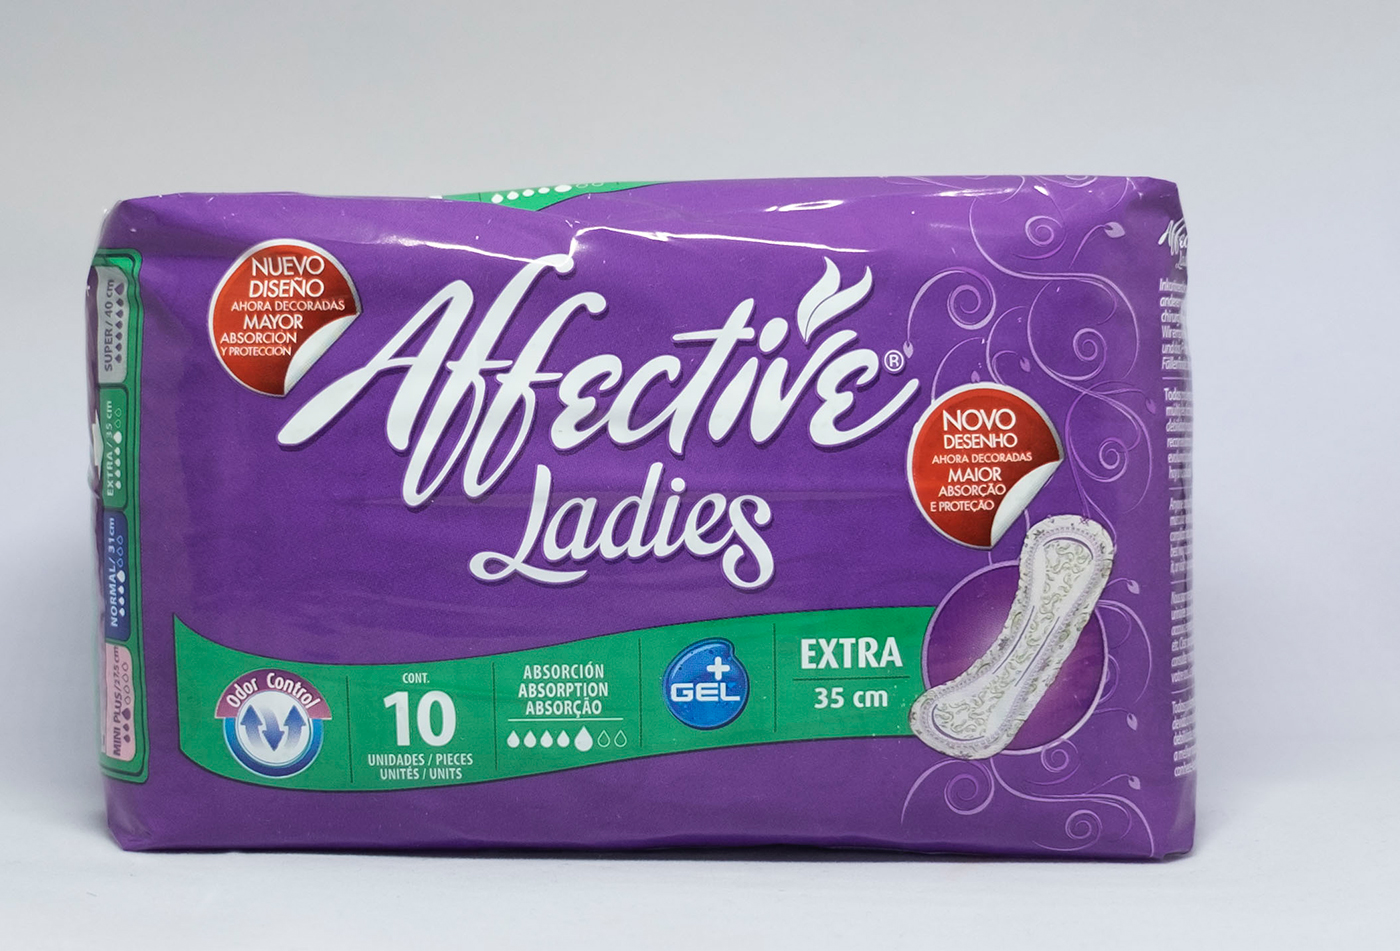 Affective Ladies Extra